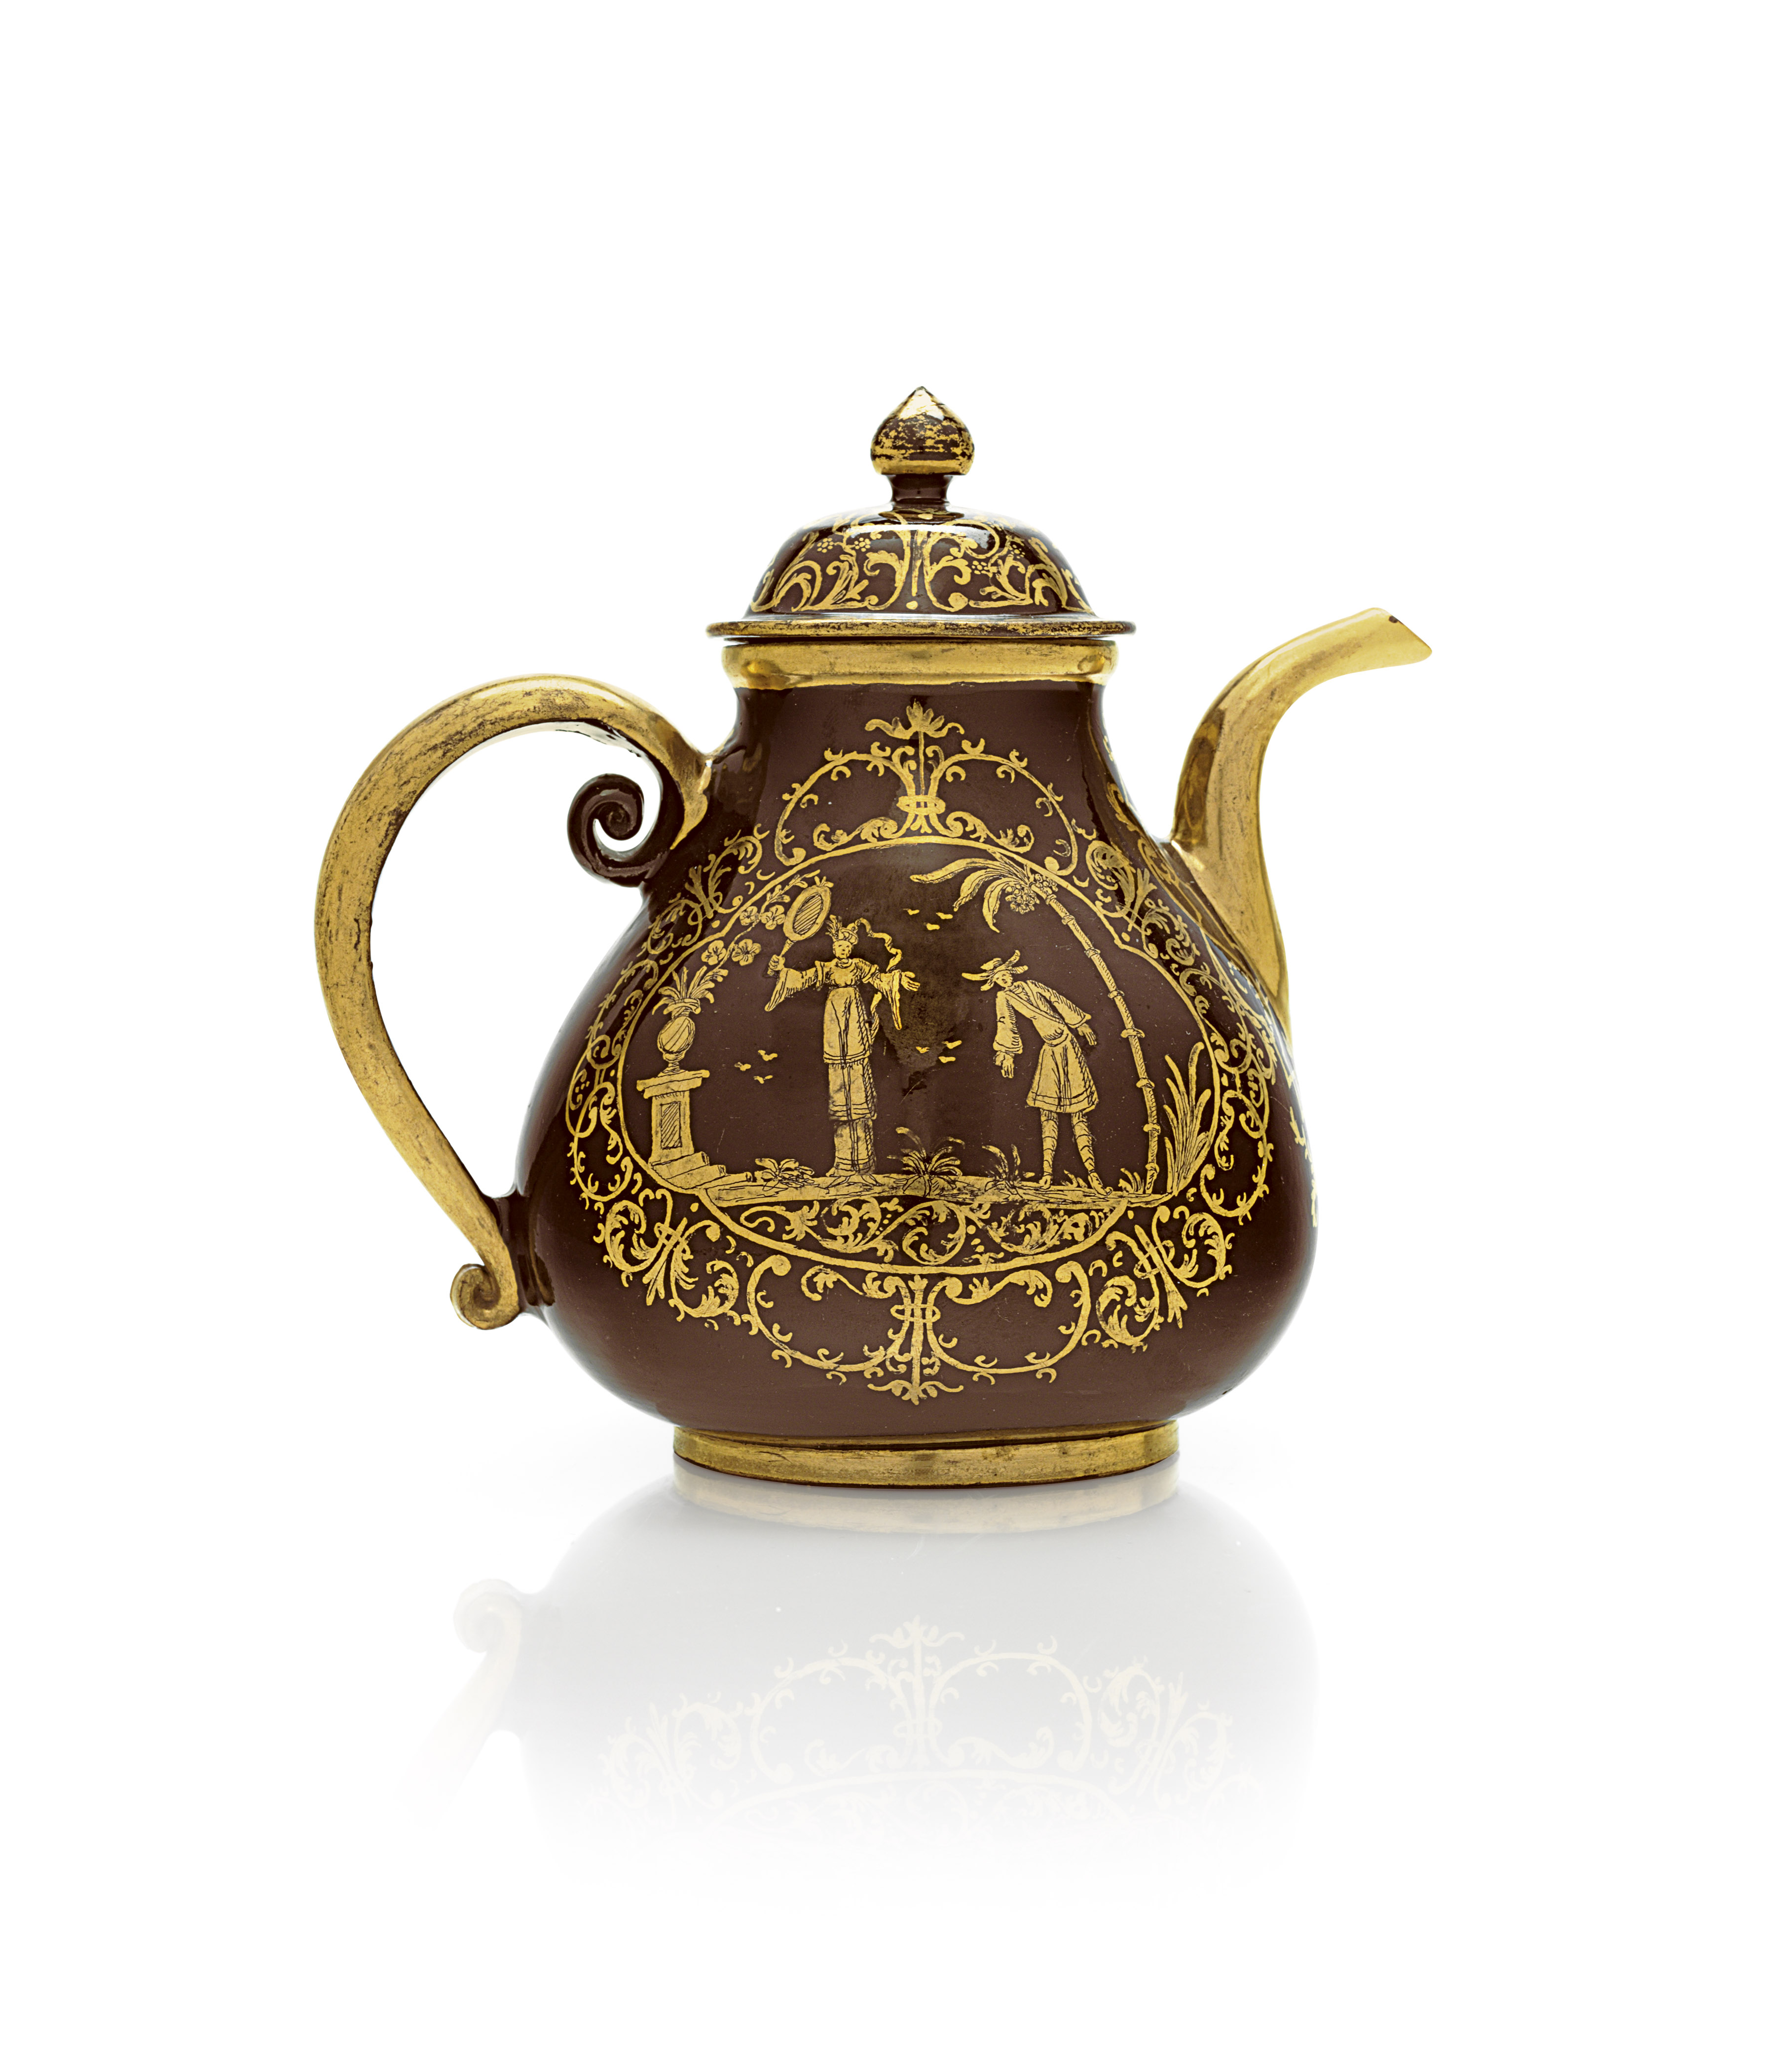 A BAYREUTH GOLDCHINESEN BLACK-GLAZED RED STONEWARE TEAPOT AND COVER